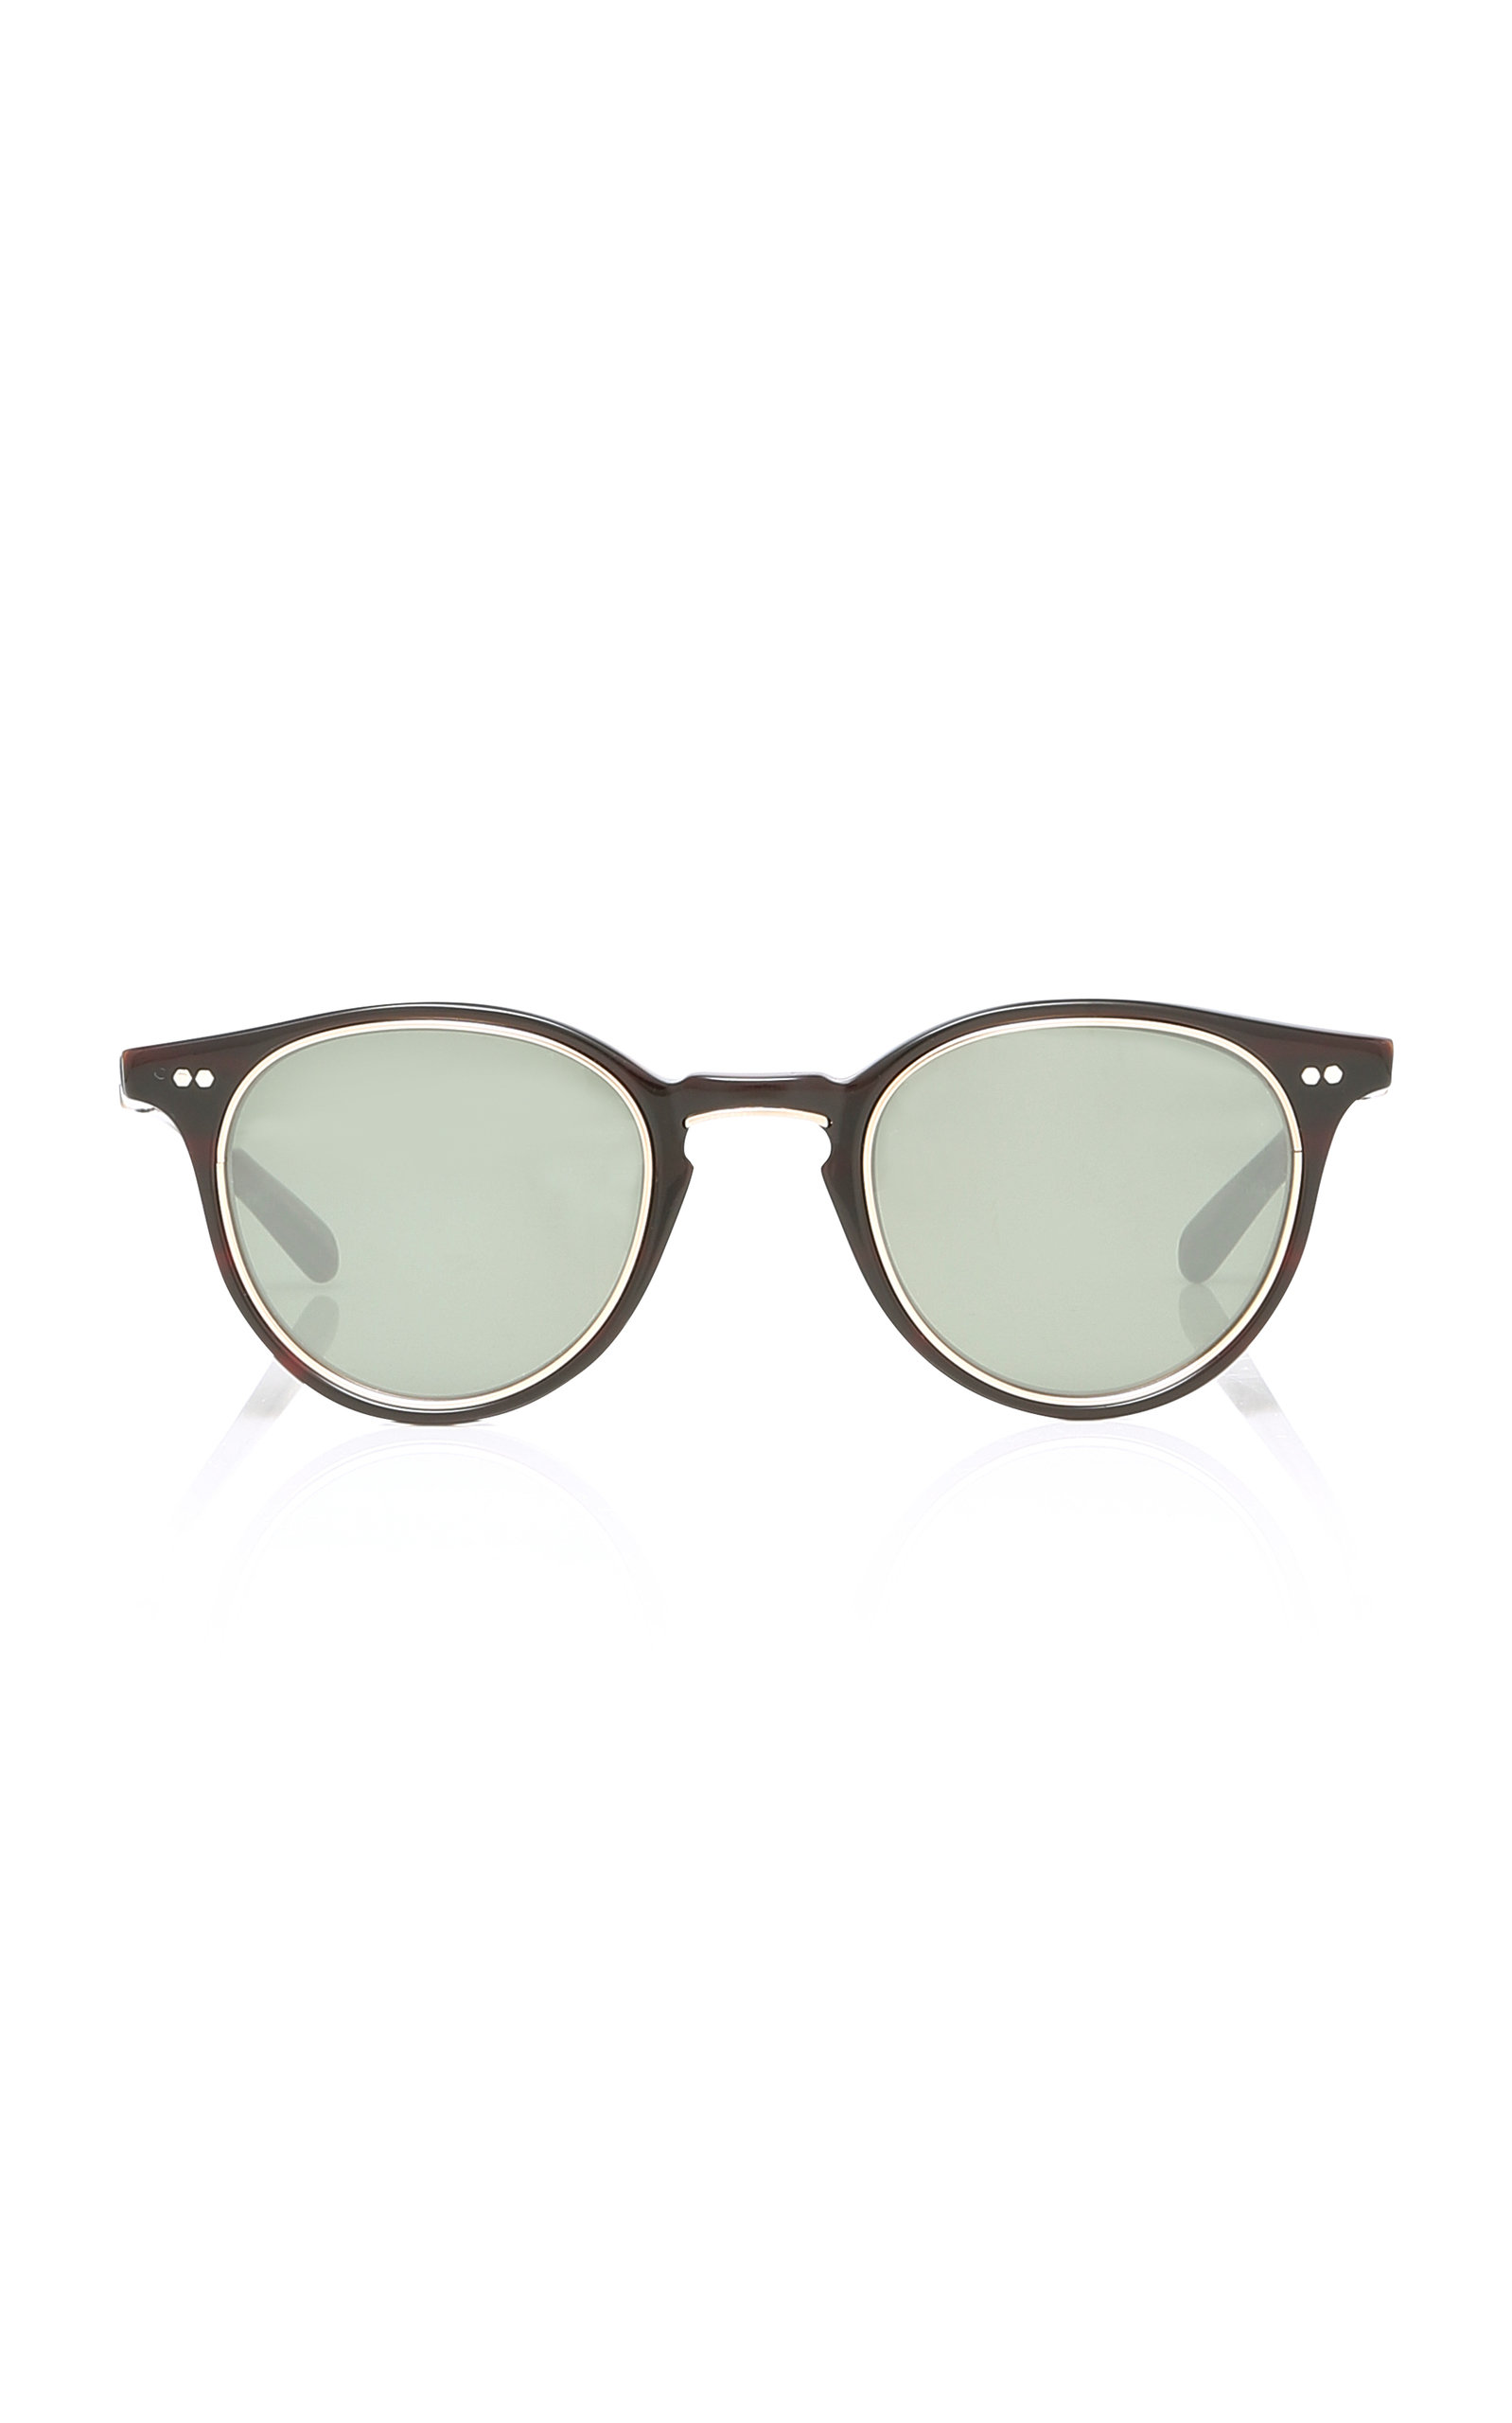 MR. LEIGHT Marmont Round Acetate And Gold Sunglasses in Black